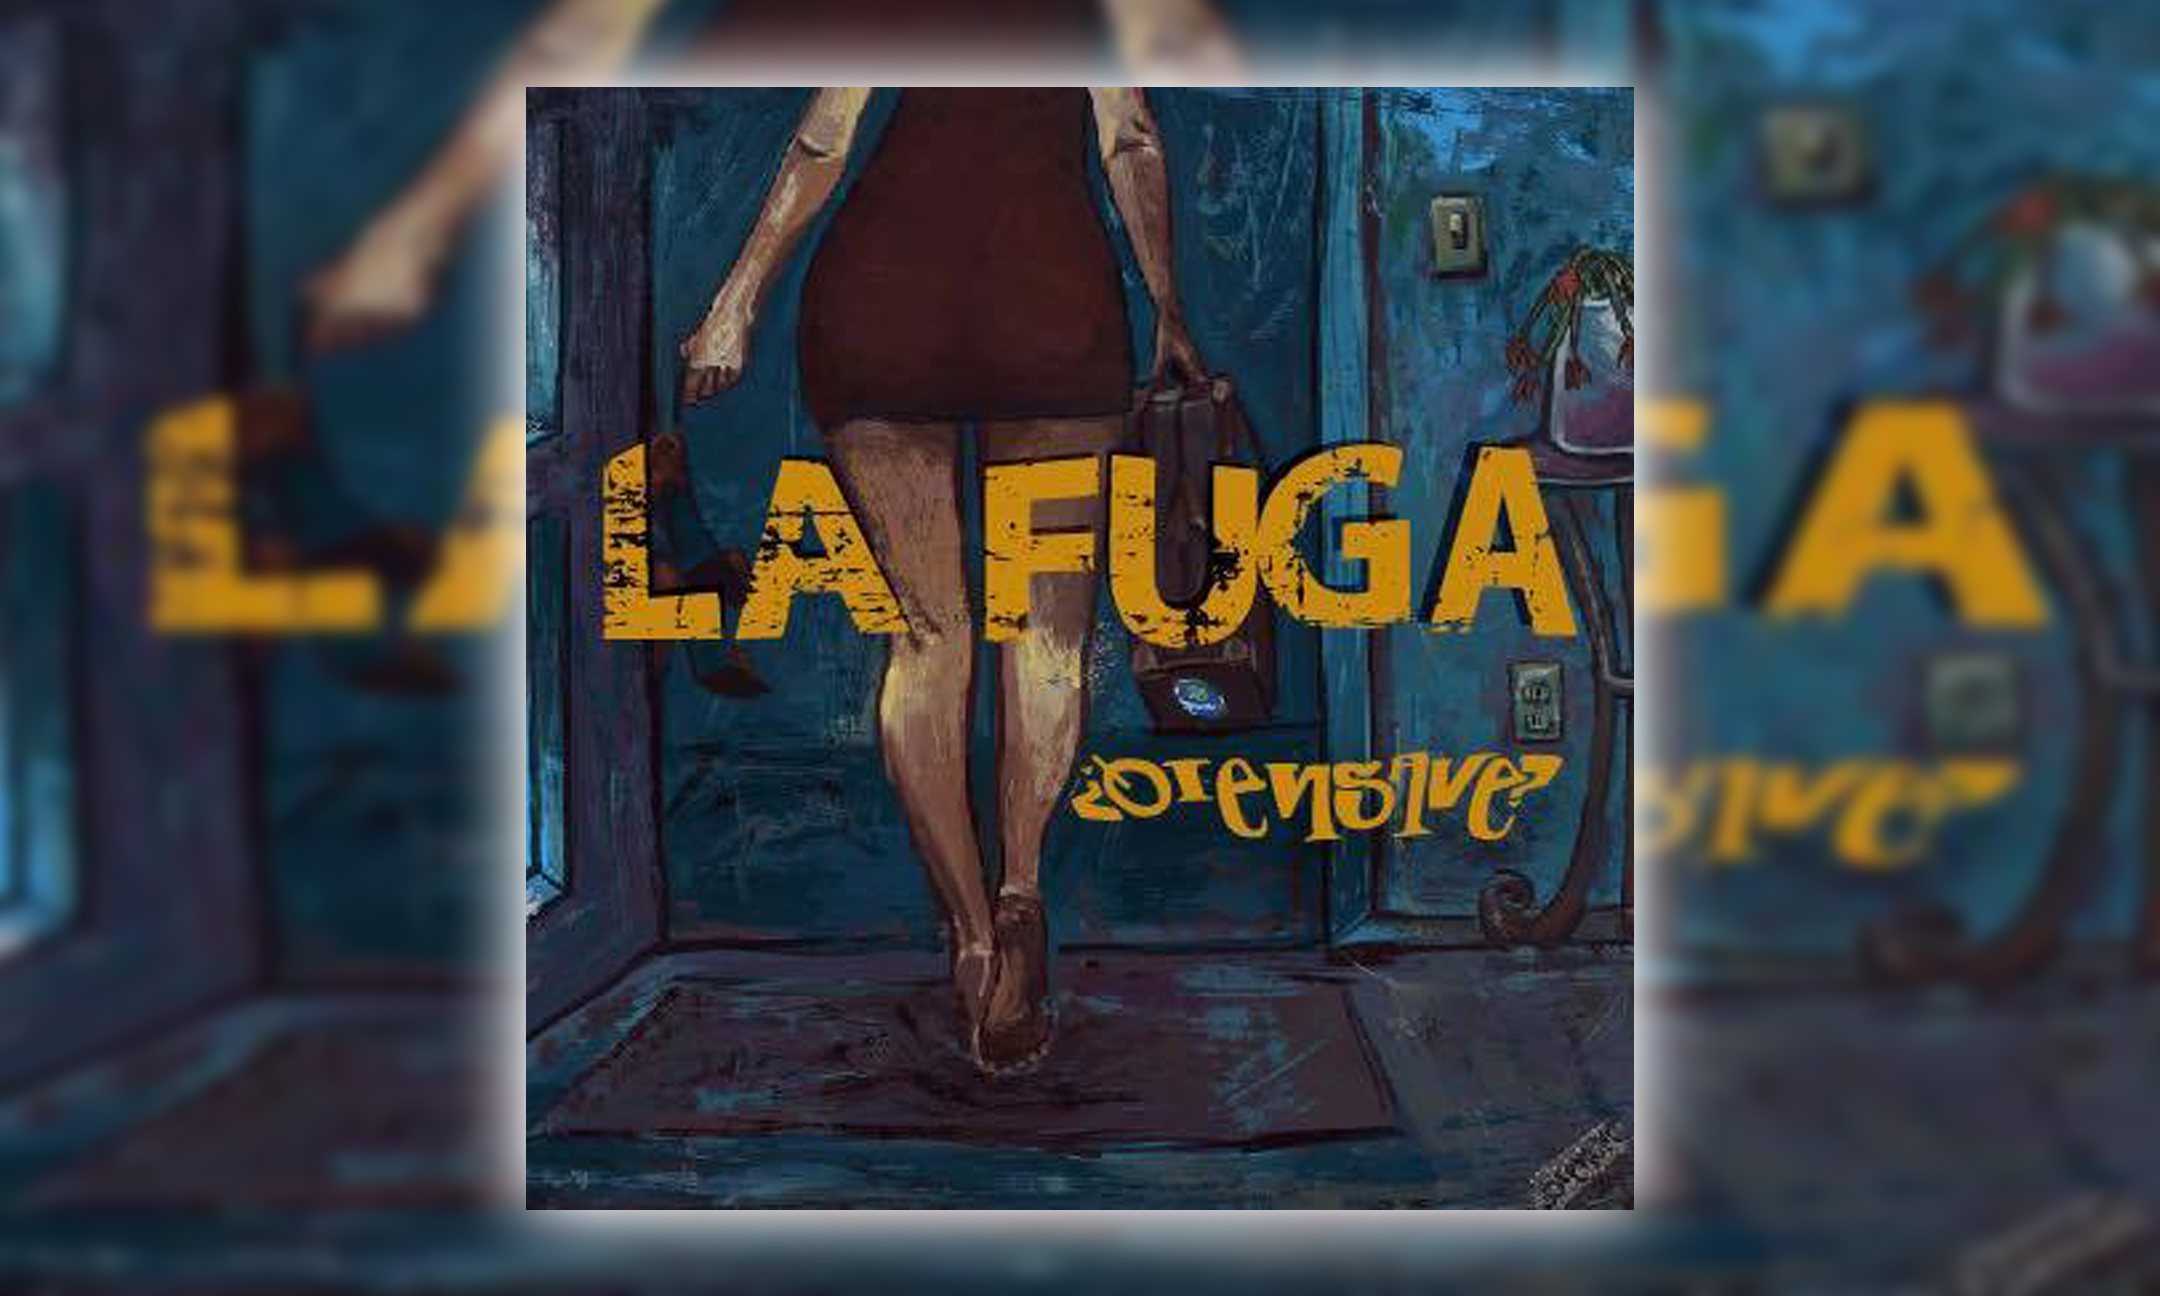 Qiensave – La Fuga (produced by: Erik Canales of Allison) #NewMusic